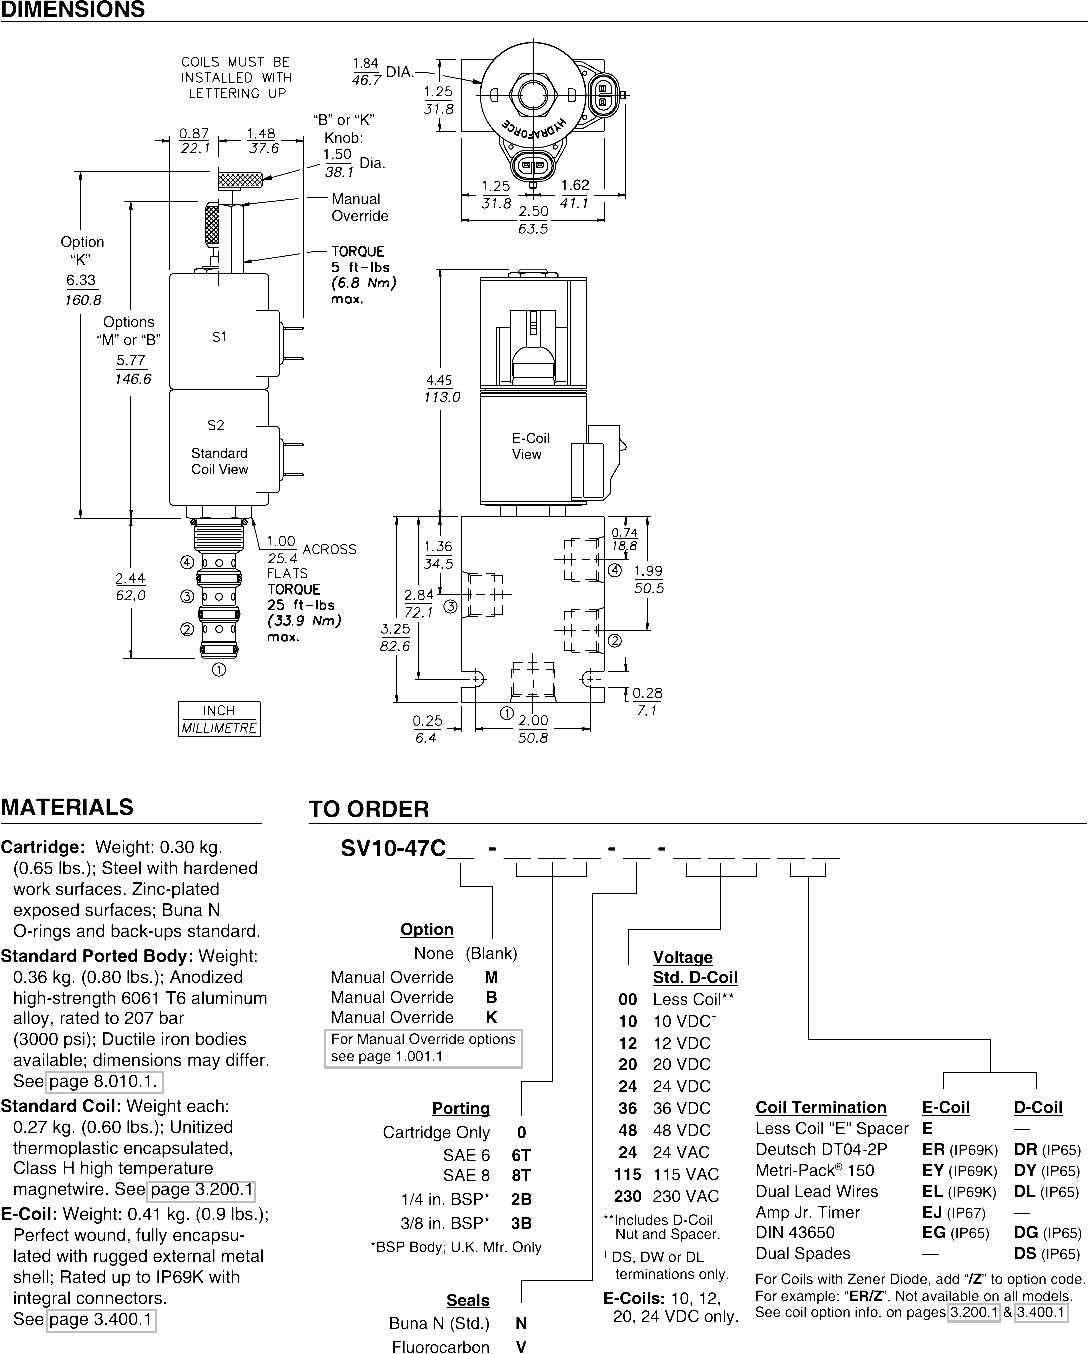 4 Way 3 Position Hydraulic Valve Schematic: Why Valve Type Matters